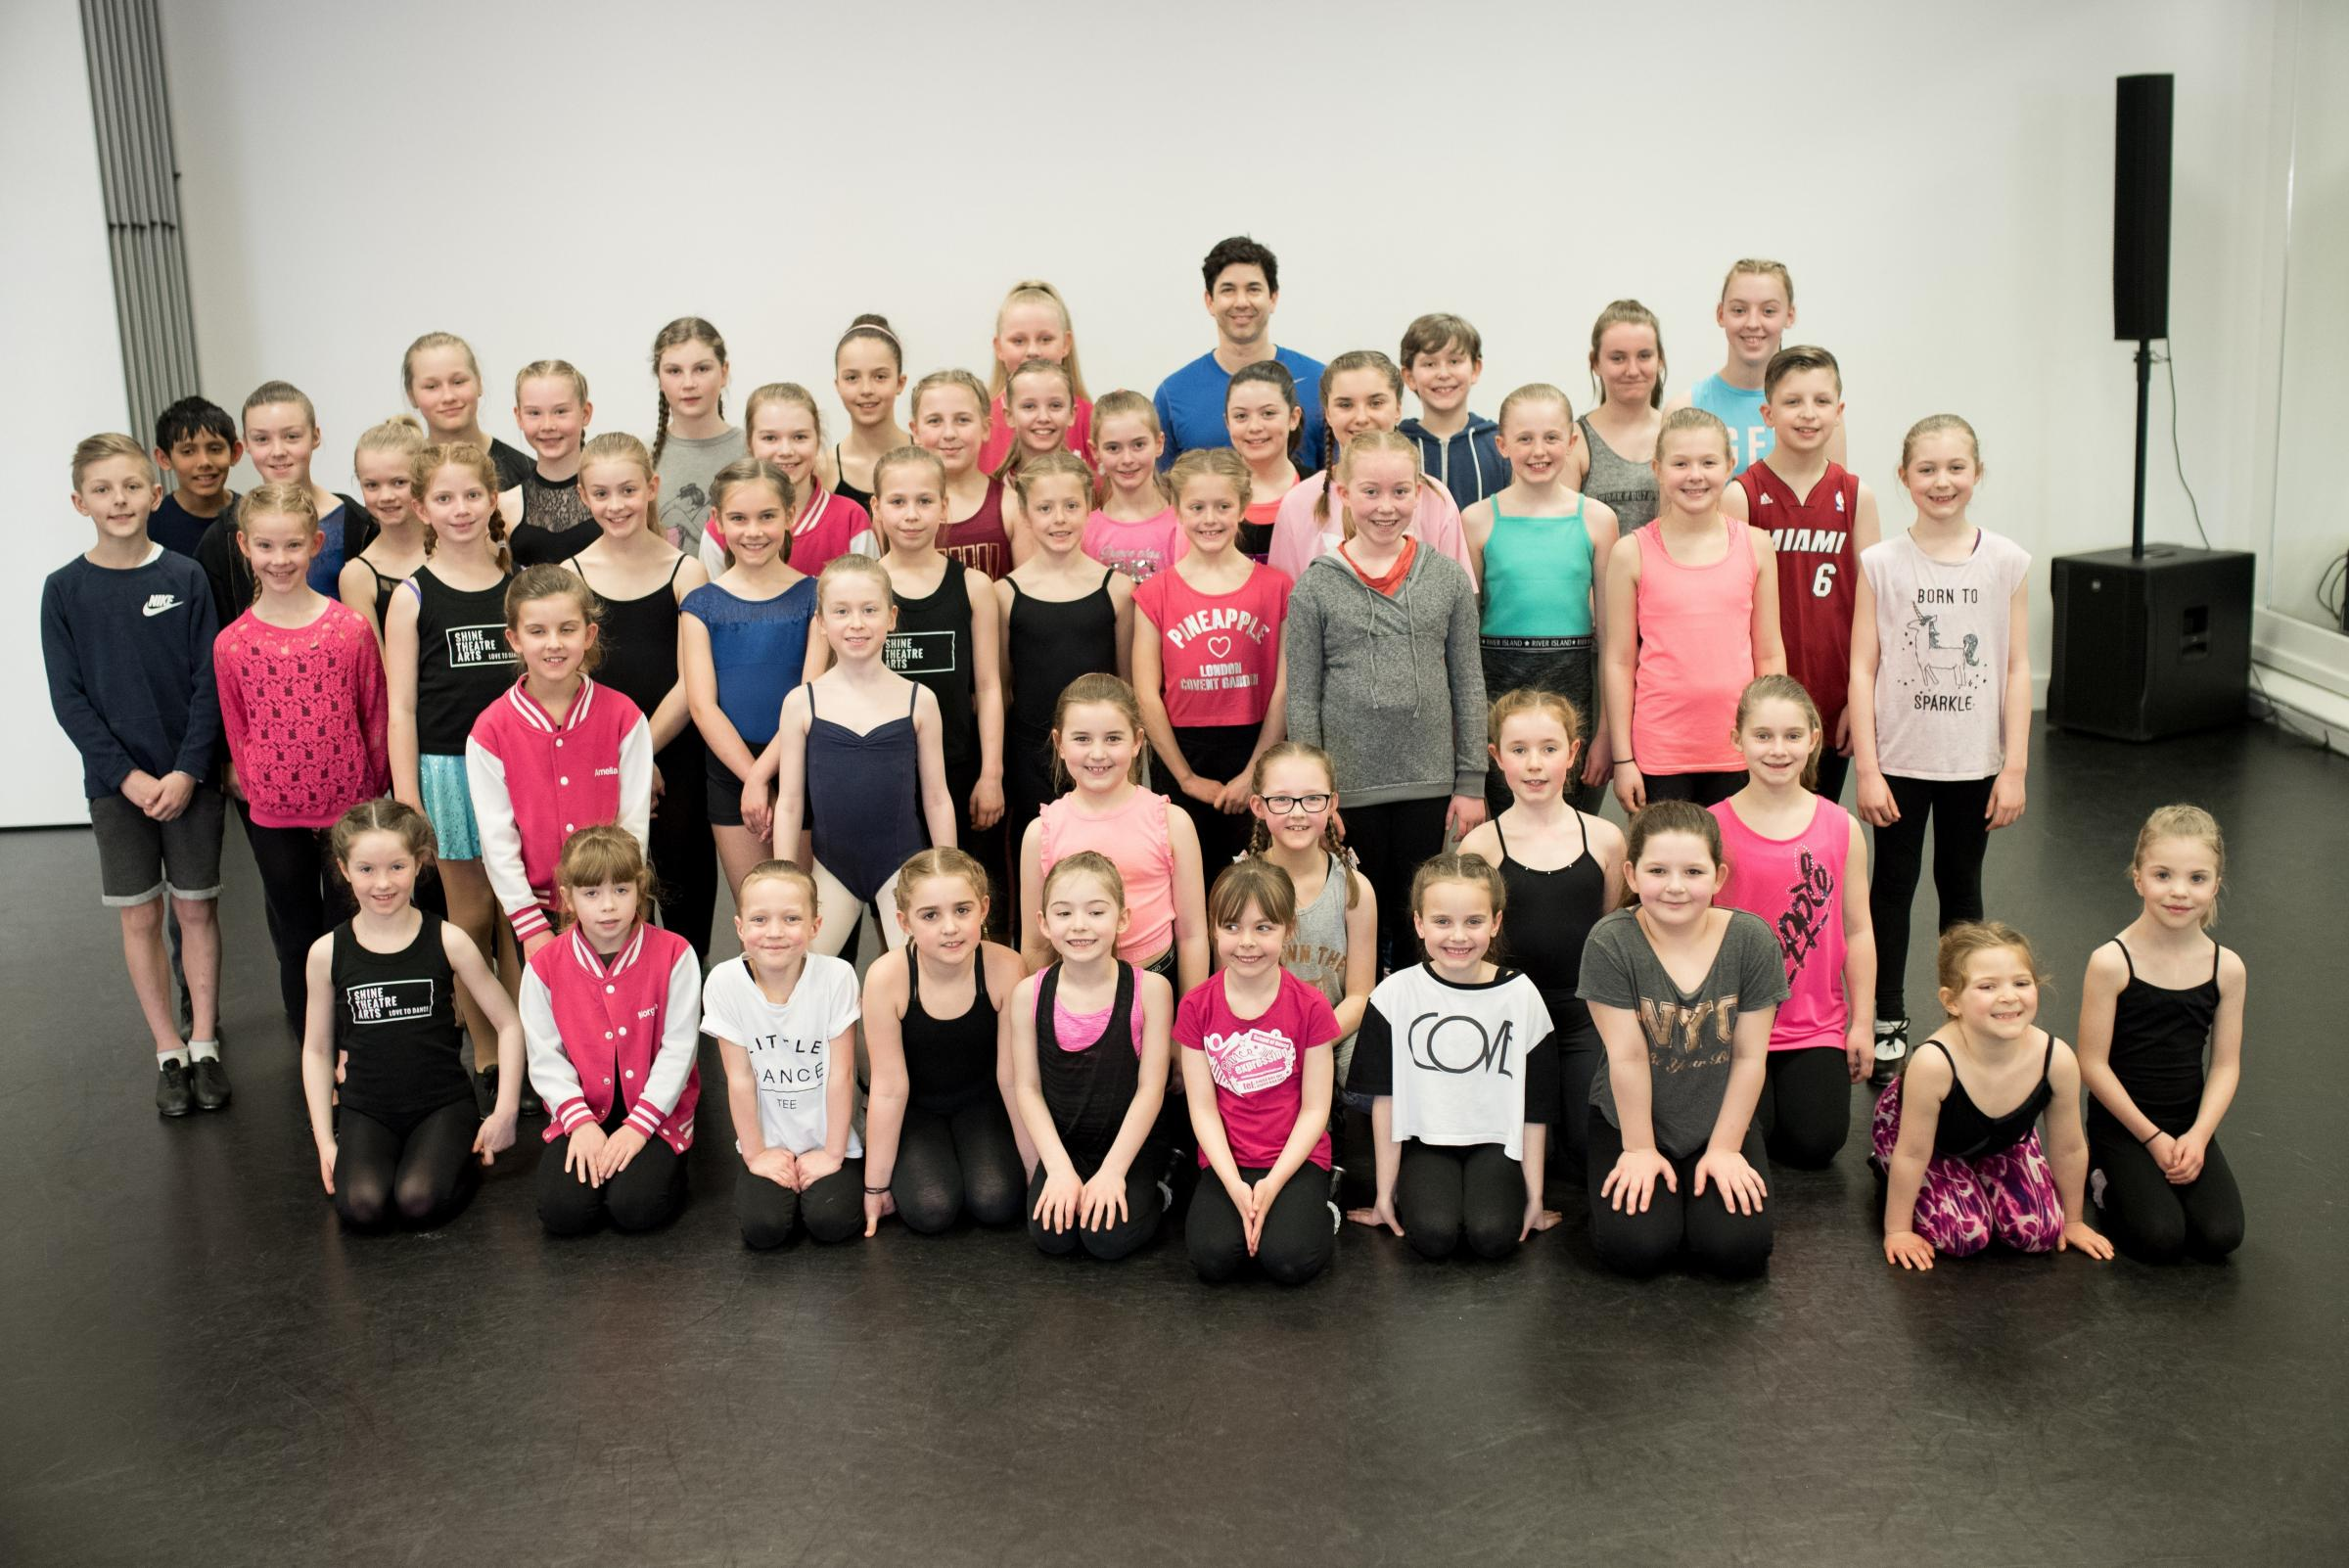 West End star and tap dancer Adam Garcia took part in a masterclass at Dance Expression in Norton.